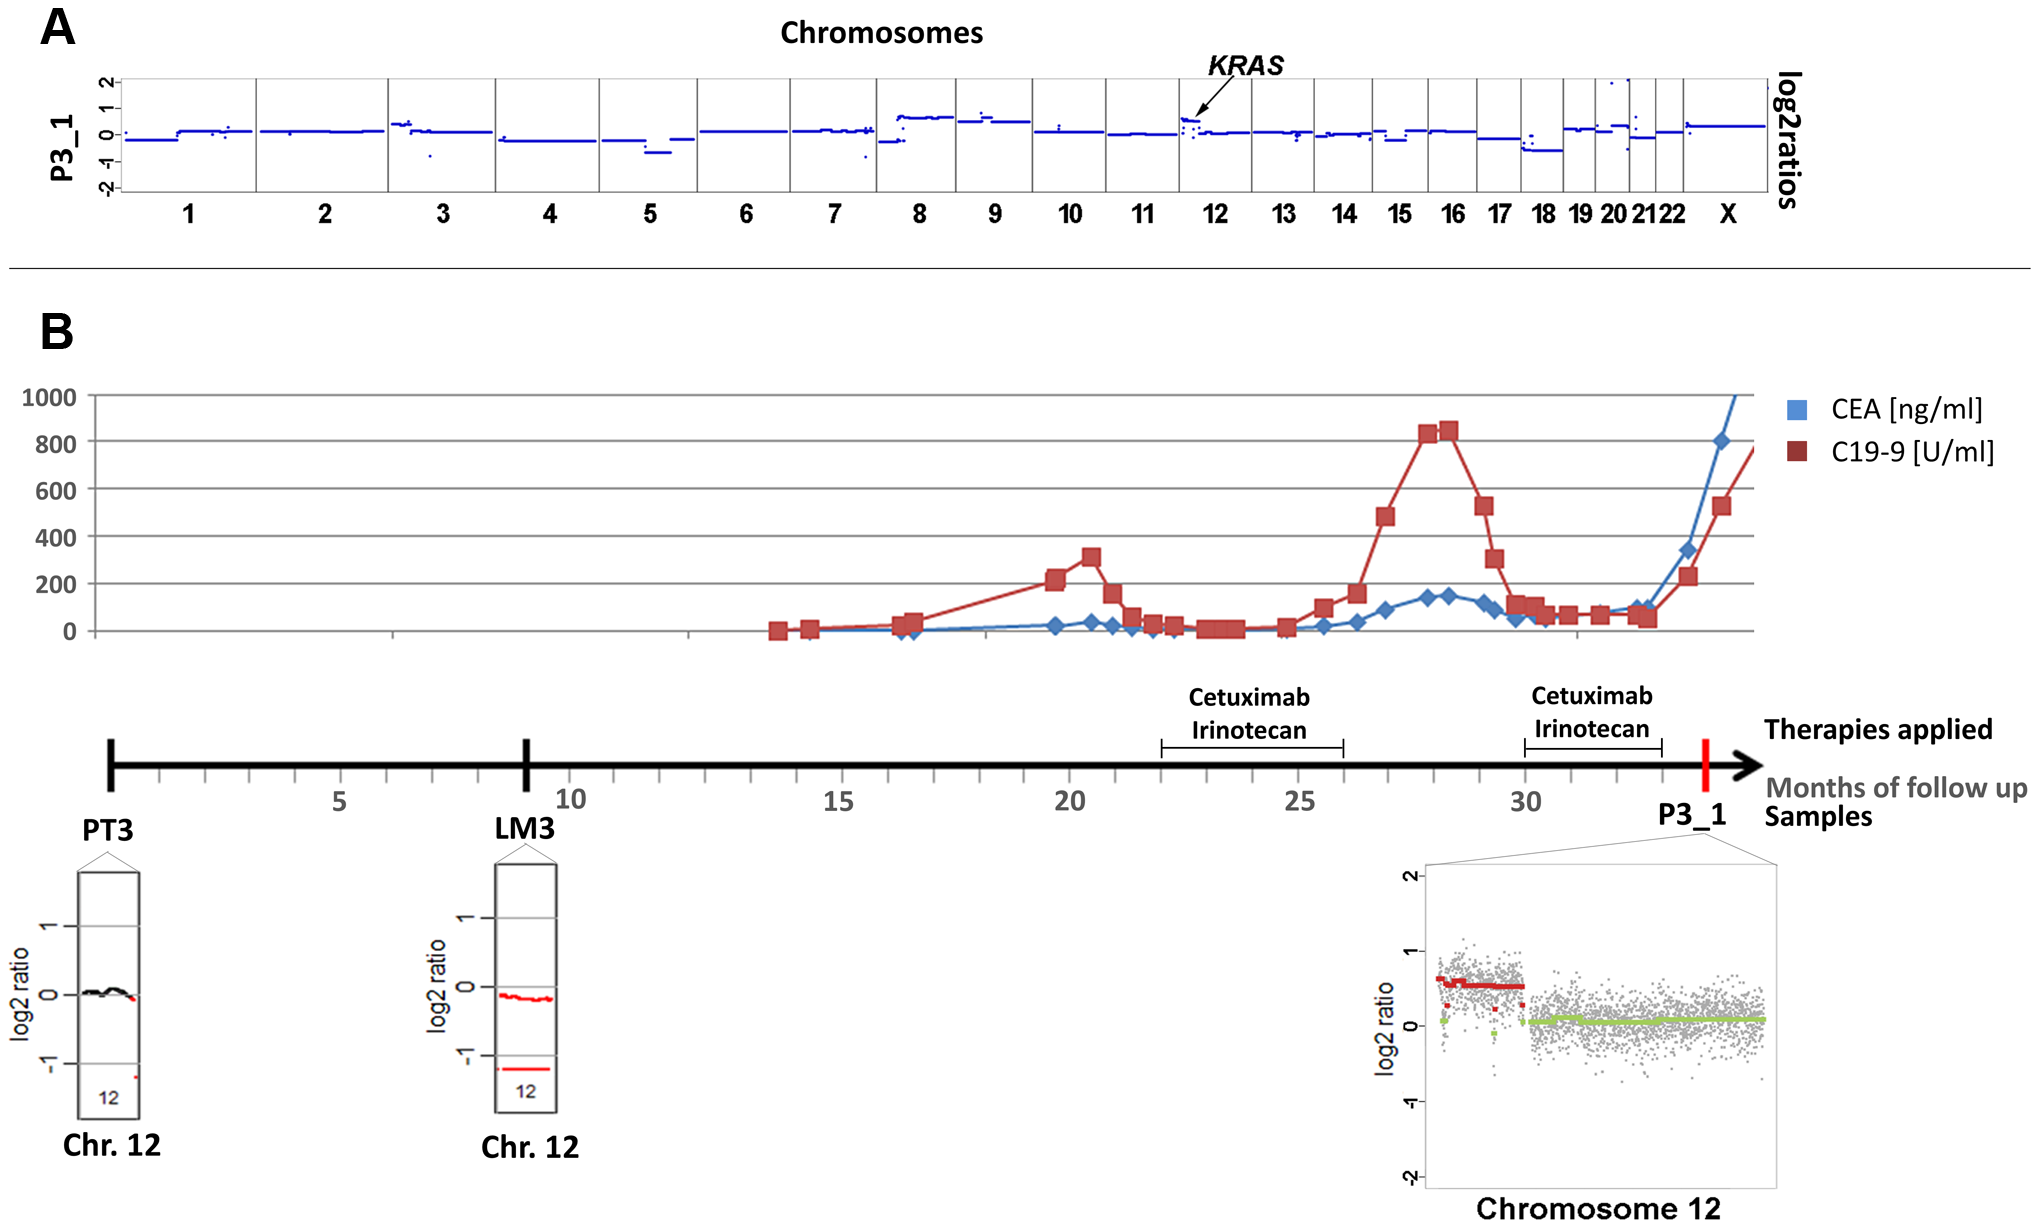 Occurrence of a chromosomal 12p polysomy under cetuximab therapy in patient #26C1.